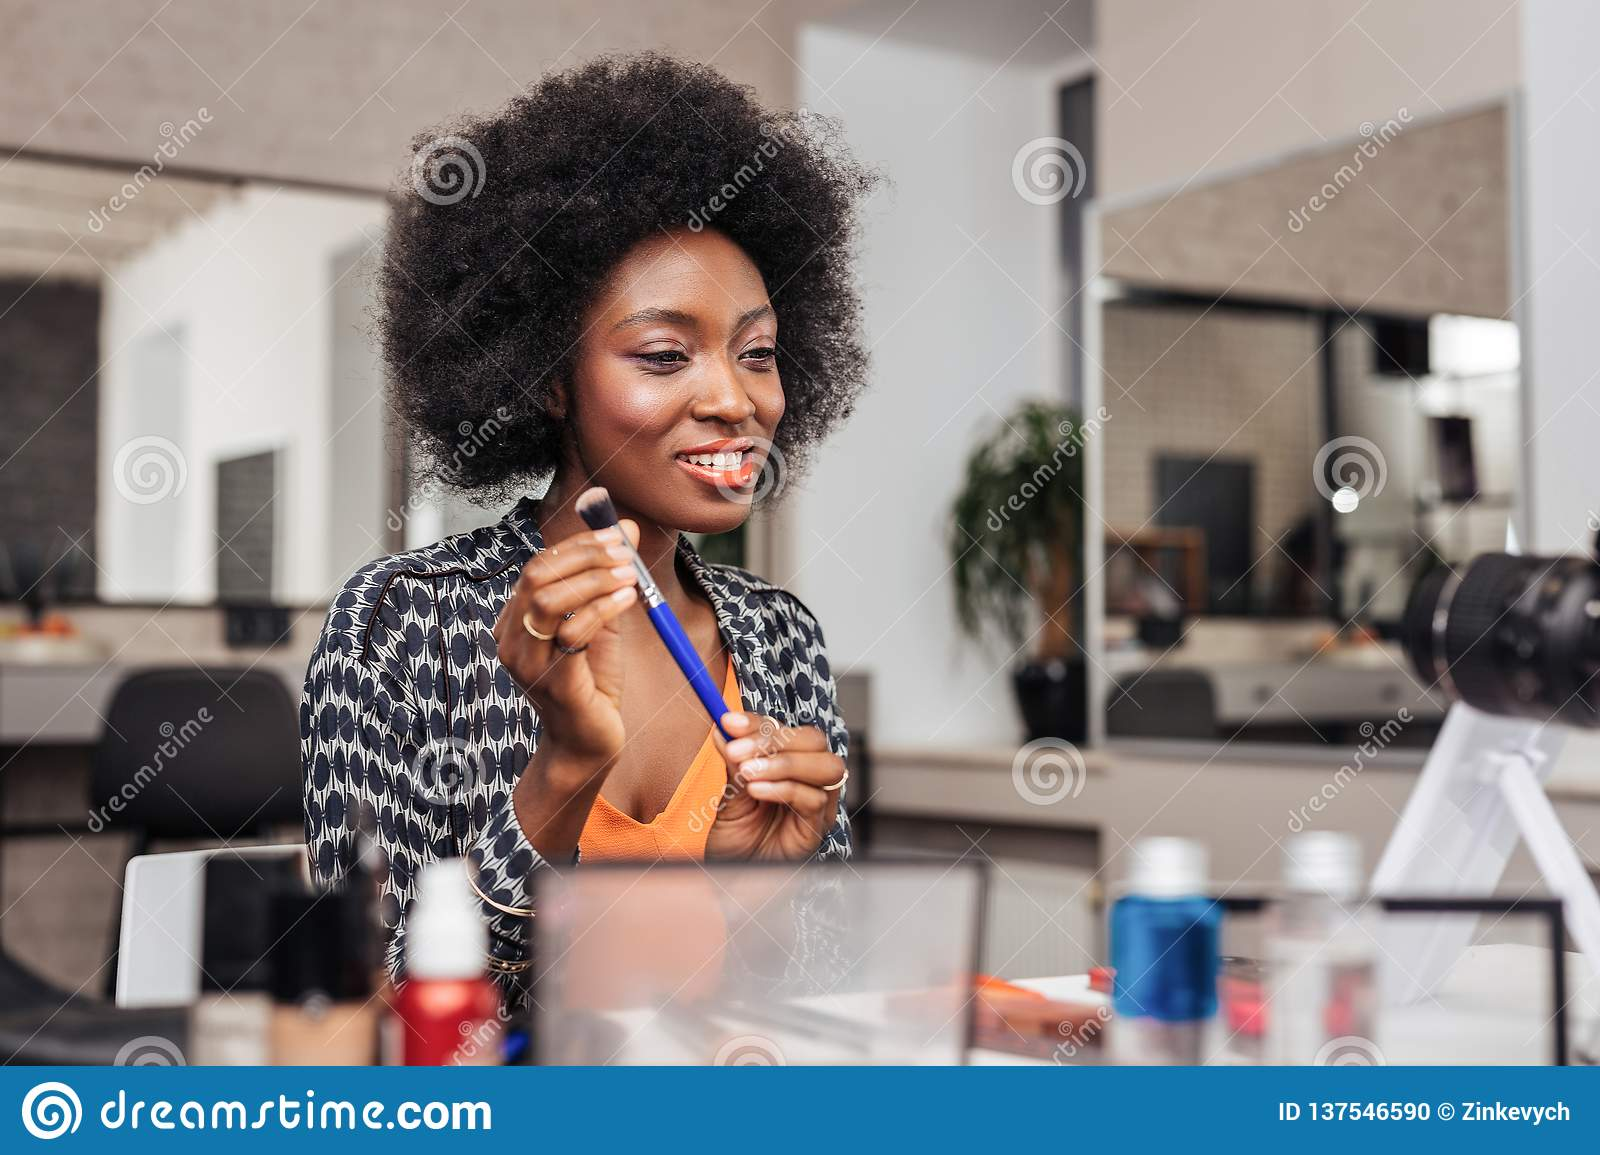 Beautiful african american woman with bright lipstick looking amused